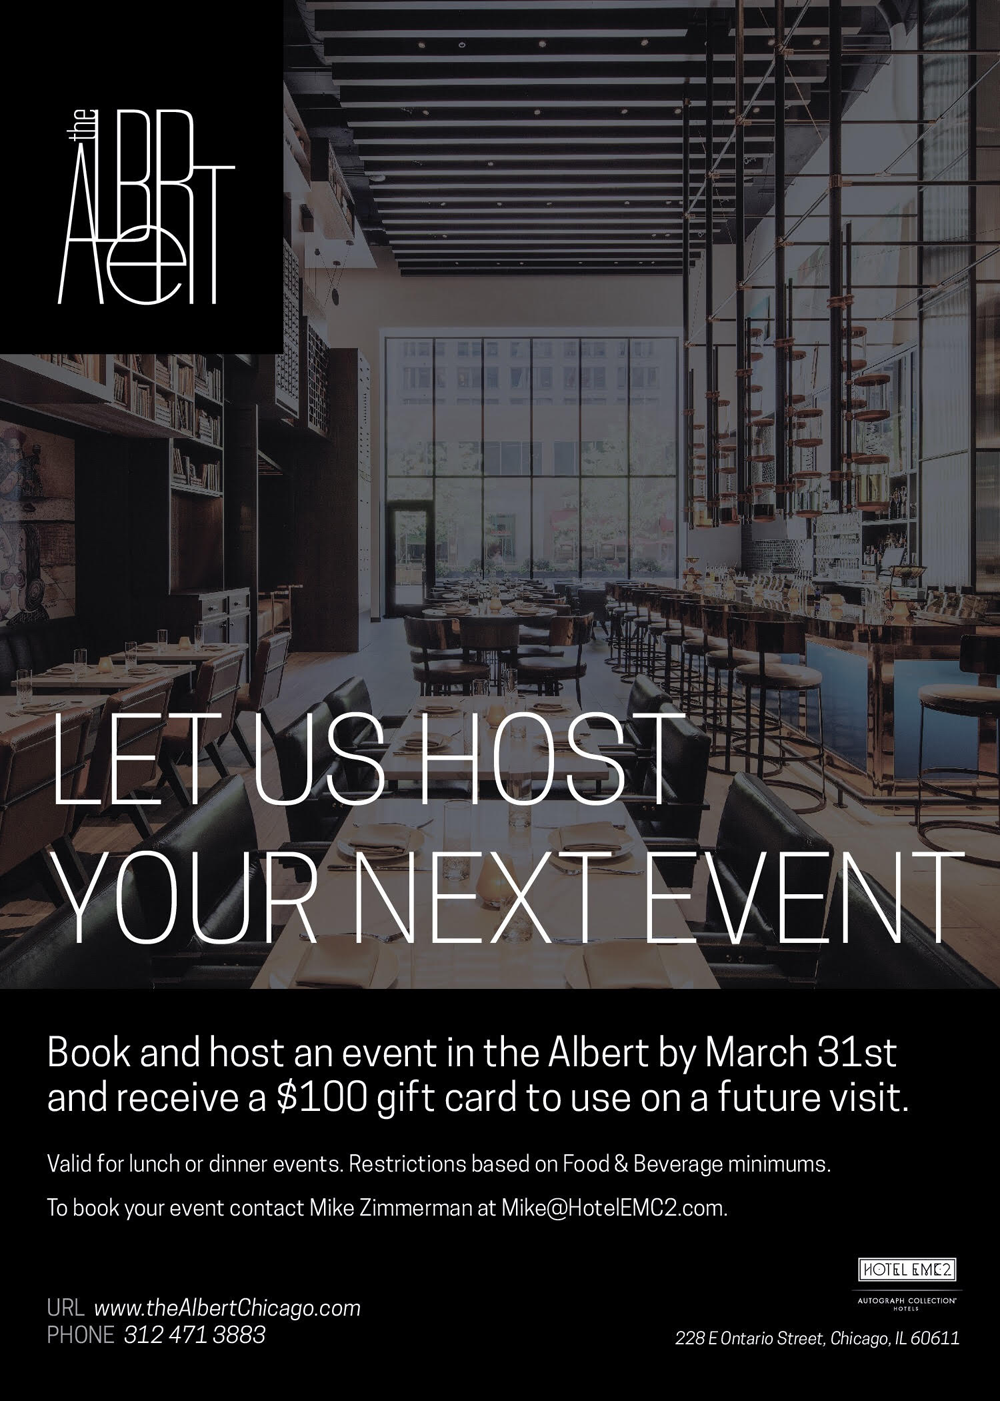 Private Event at the Albert